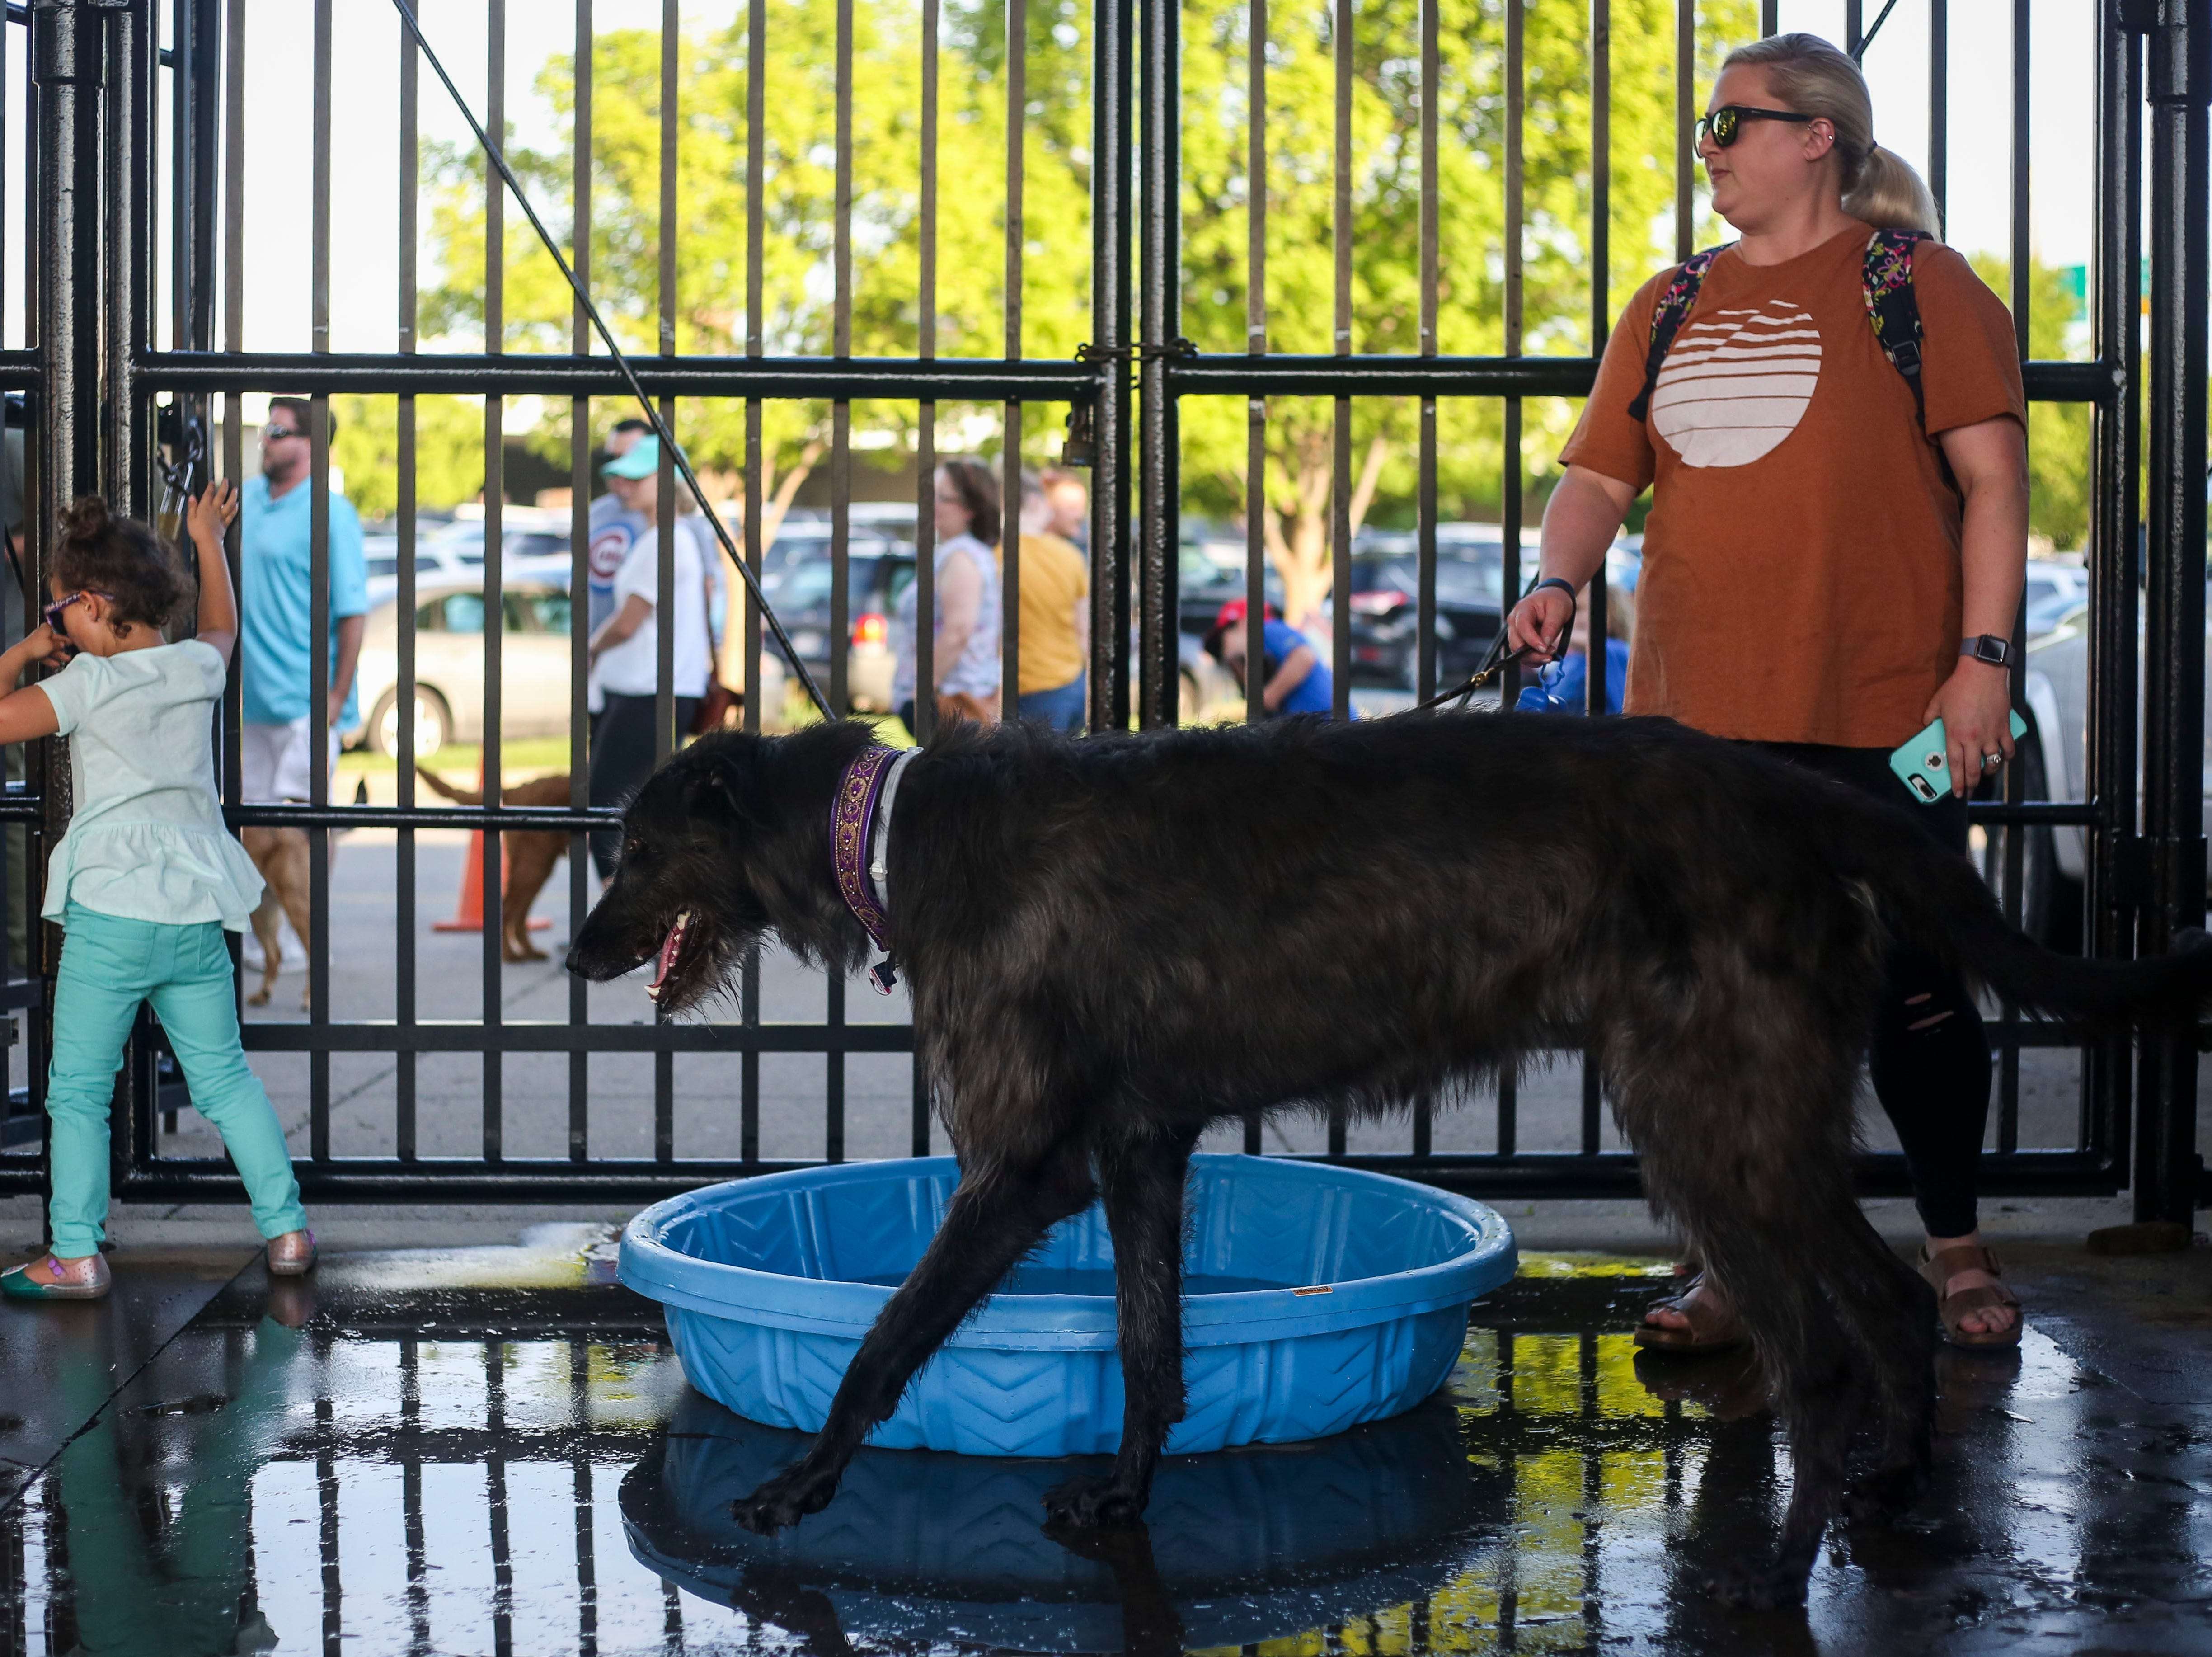 Raven the Irish wolfhound plays in water with her owner Andrea Spencer during the Louisville Bats v. Syracuse Mets game during Dog Day Nights at Louisville Slugger Field in downtown Louisville, Ky. on Tuesday, May 7, 2019.